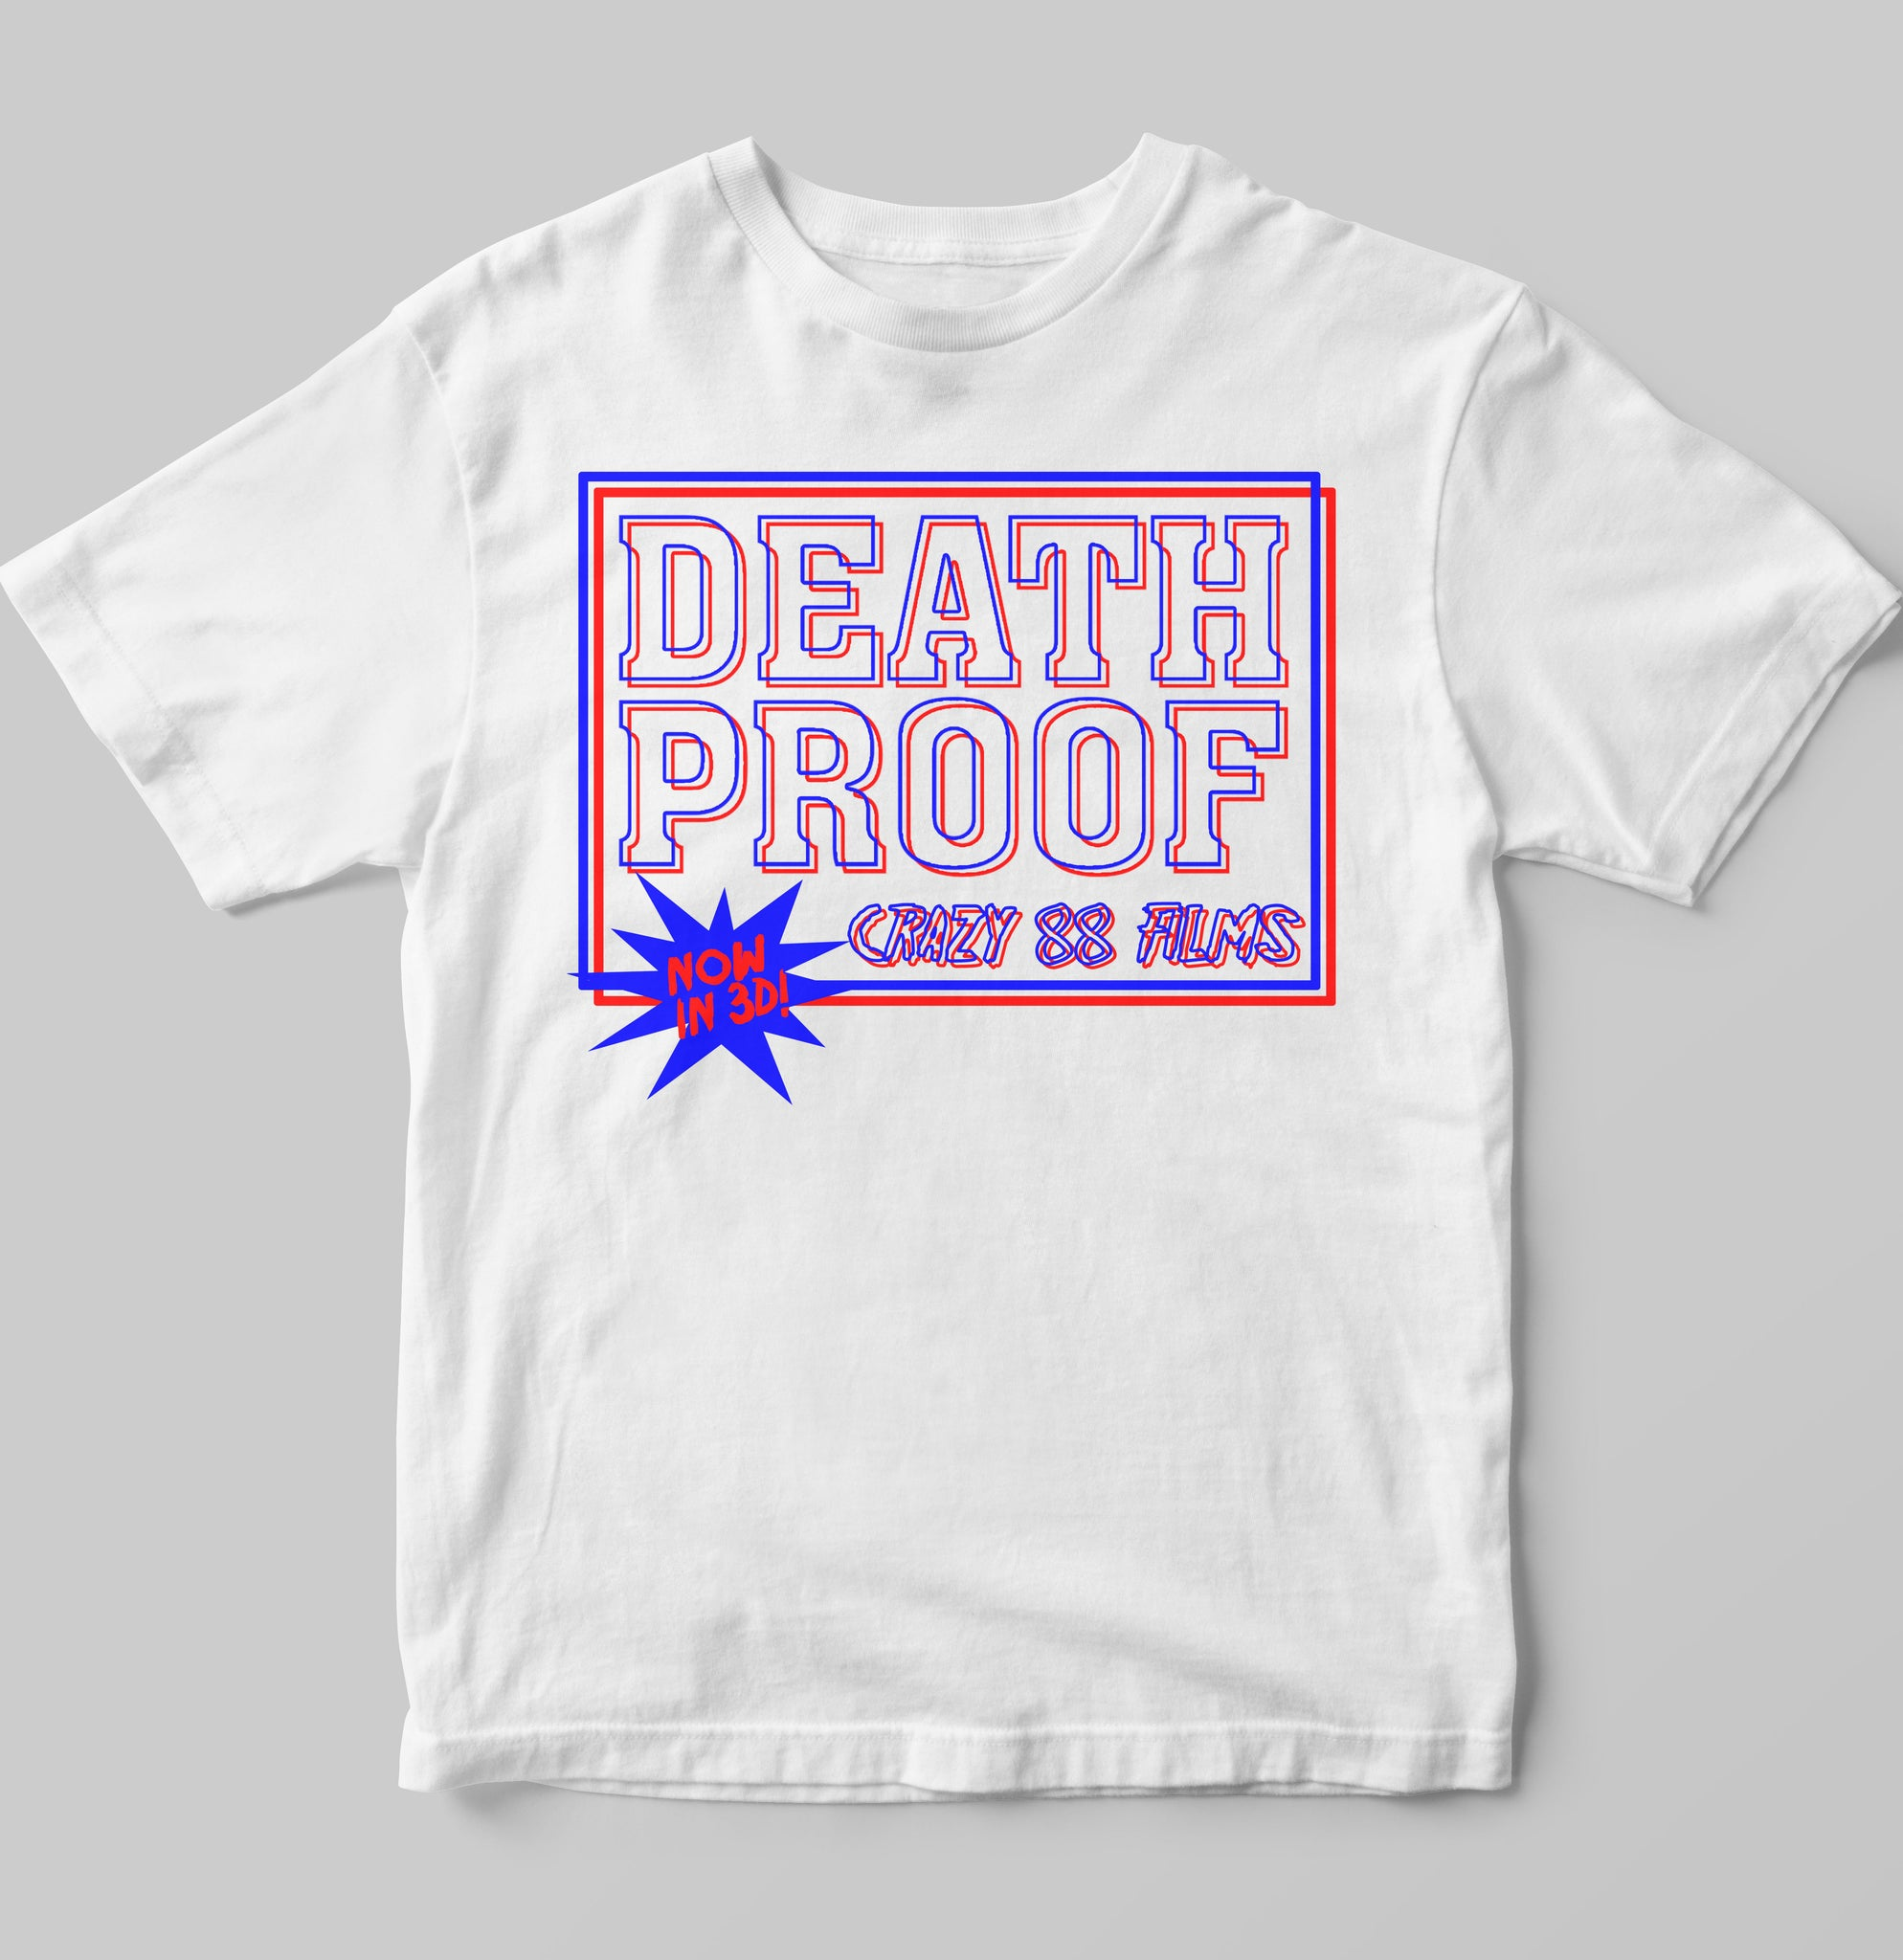 Deathproof: Now in 3D!